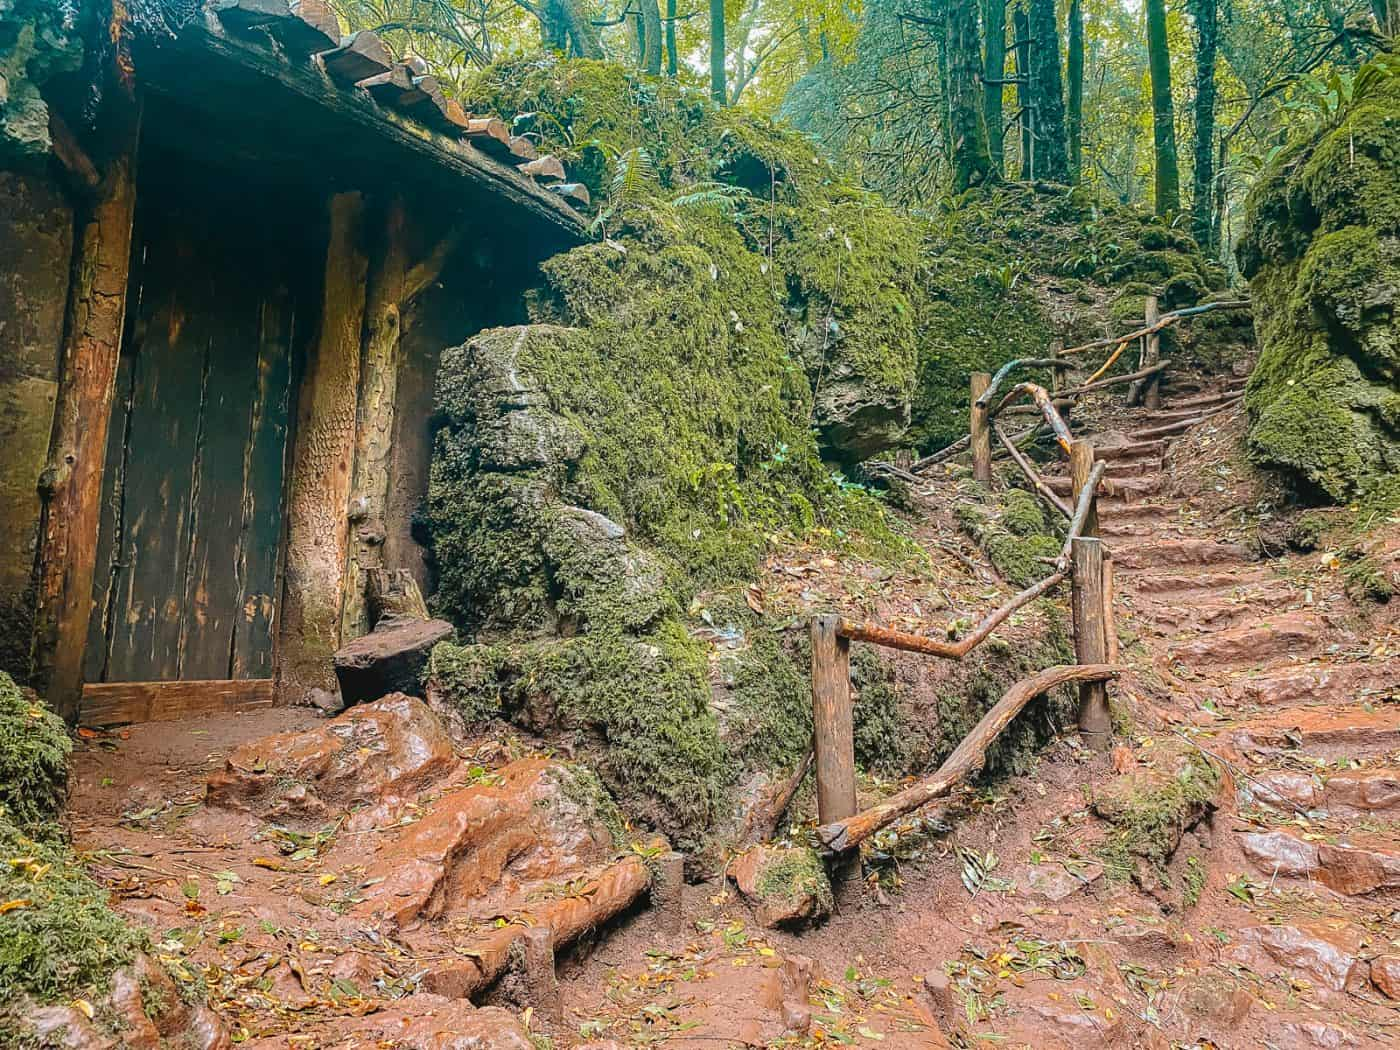 Morganas Hovel Hut in Puzzlewood